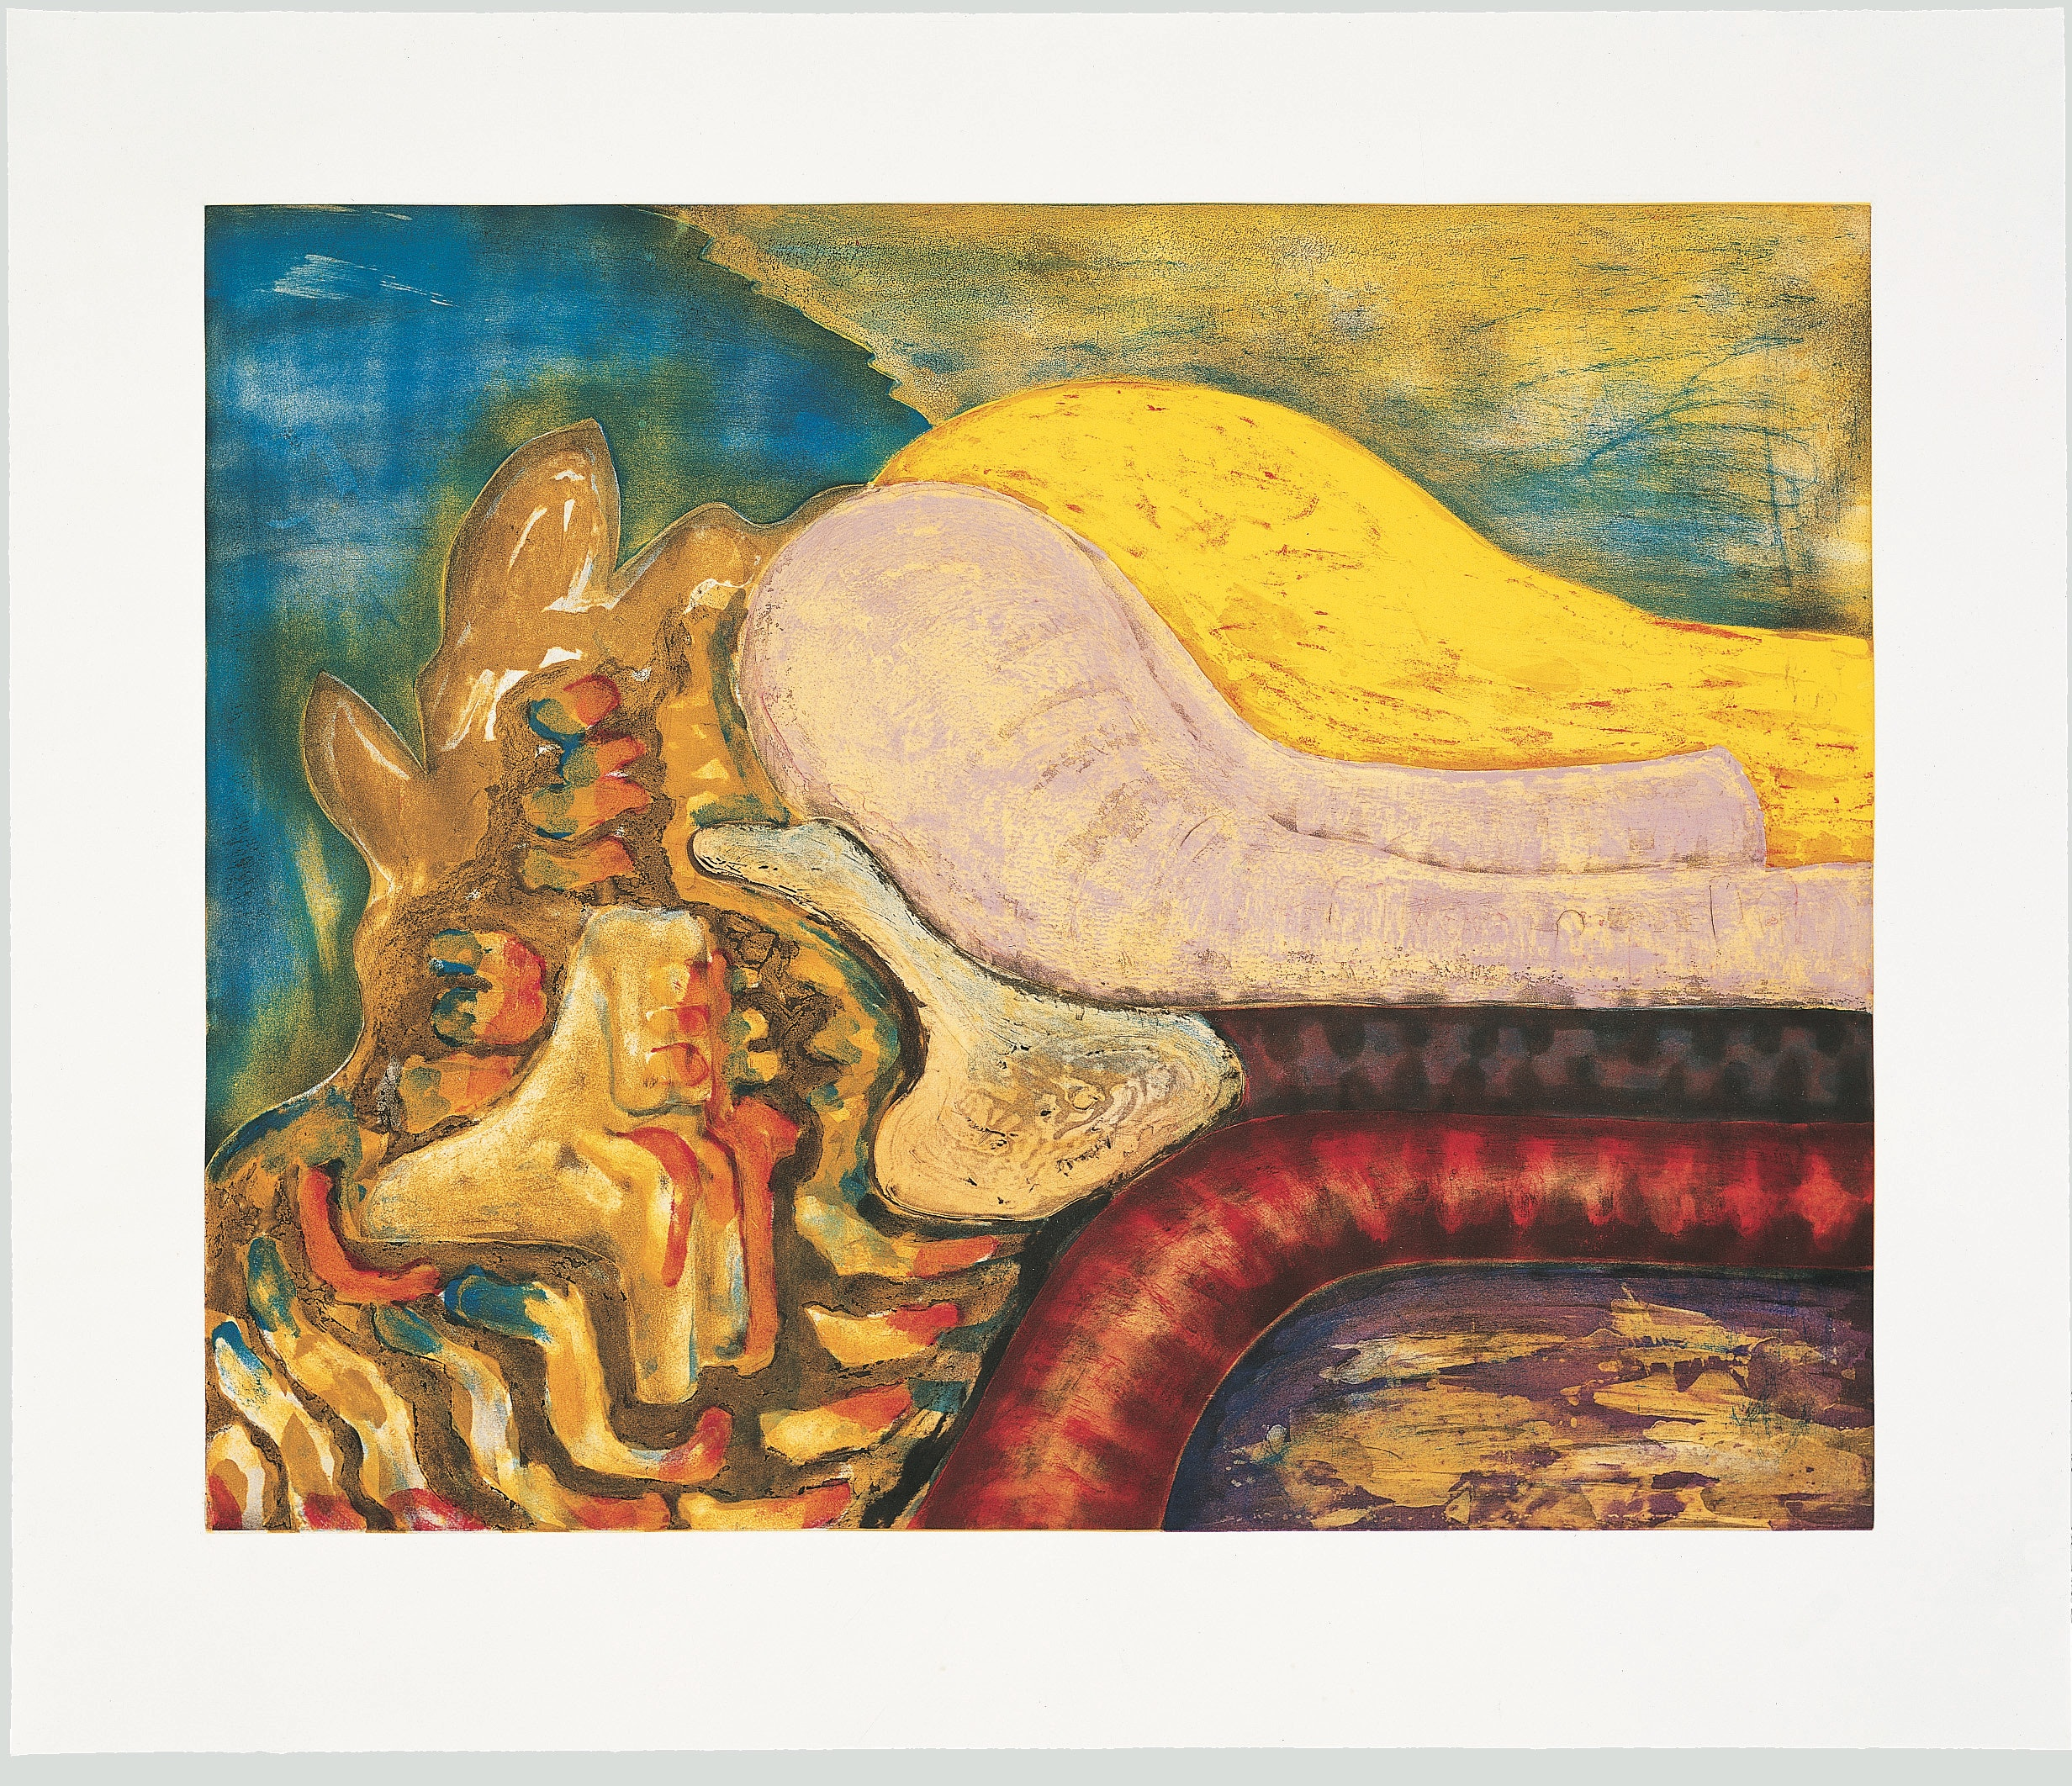 Bill Jenson, <em>Defiance</em>, 1996. Intaglio in 8 colors with spitbite and aquatint on Arches En Tout Cas paper, 36 1/4 x 42 3/4 inches. Courtesy ULAE.